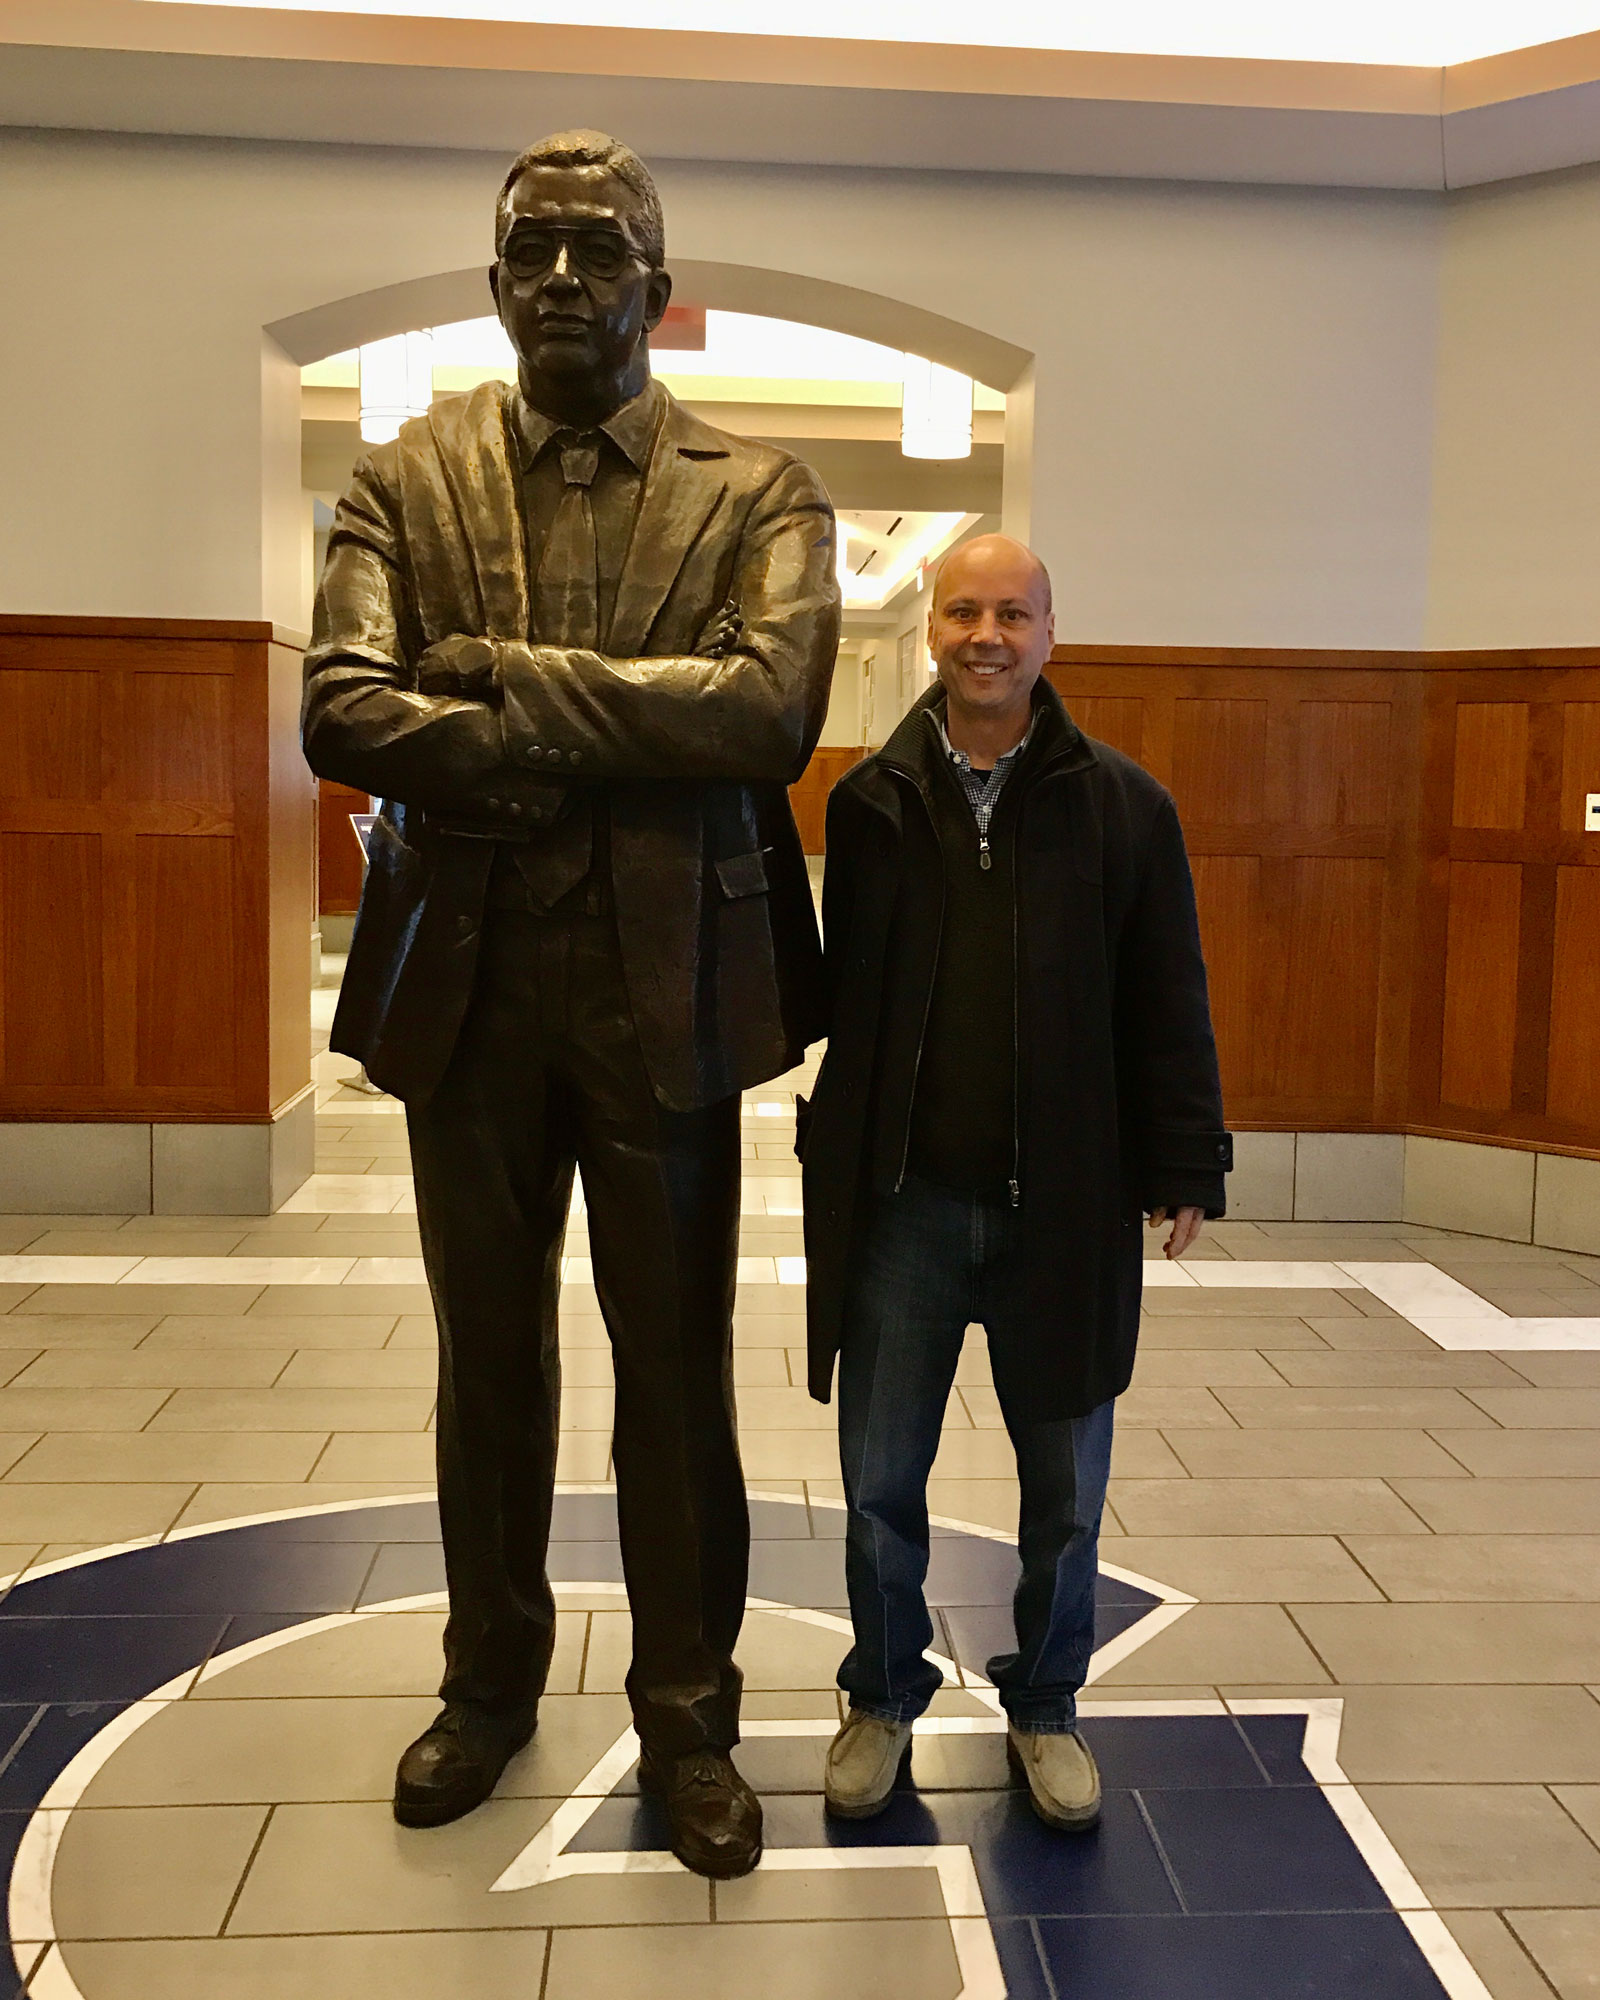 Chuck Swirsky with a statue of legendary Georgetown coach John Thompson